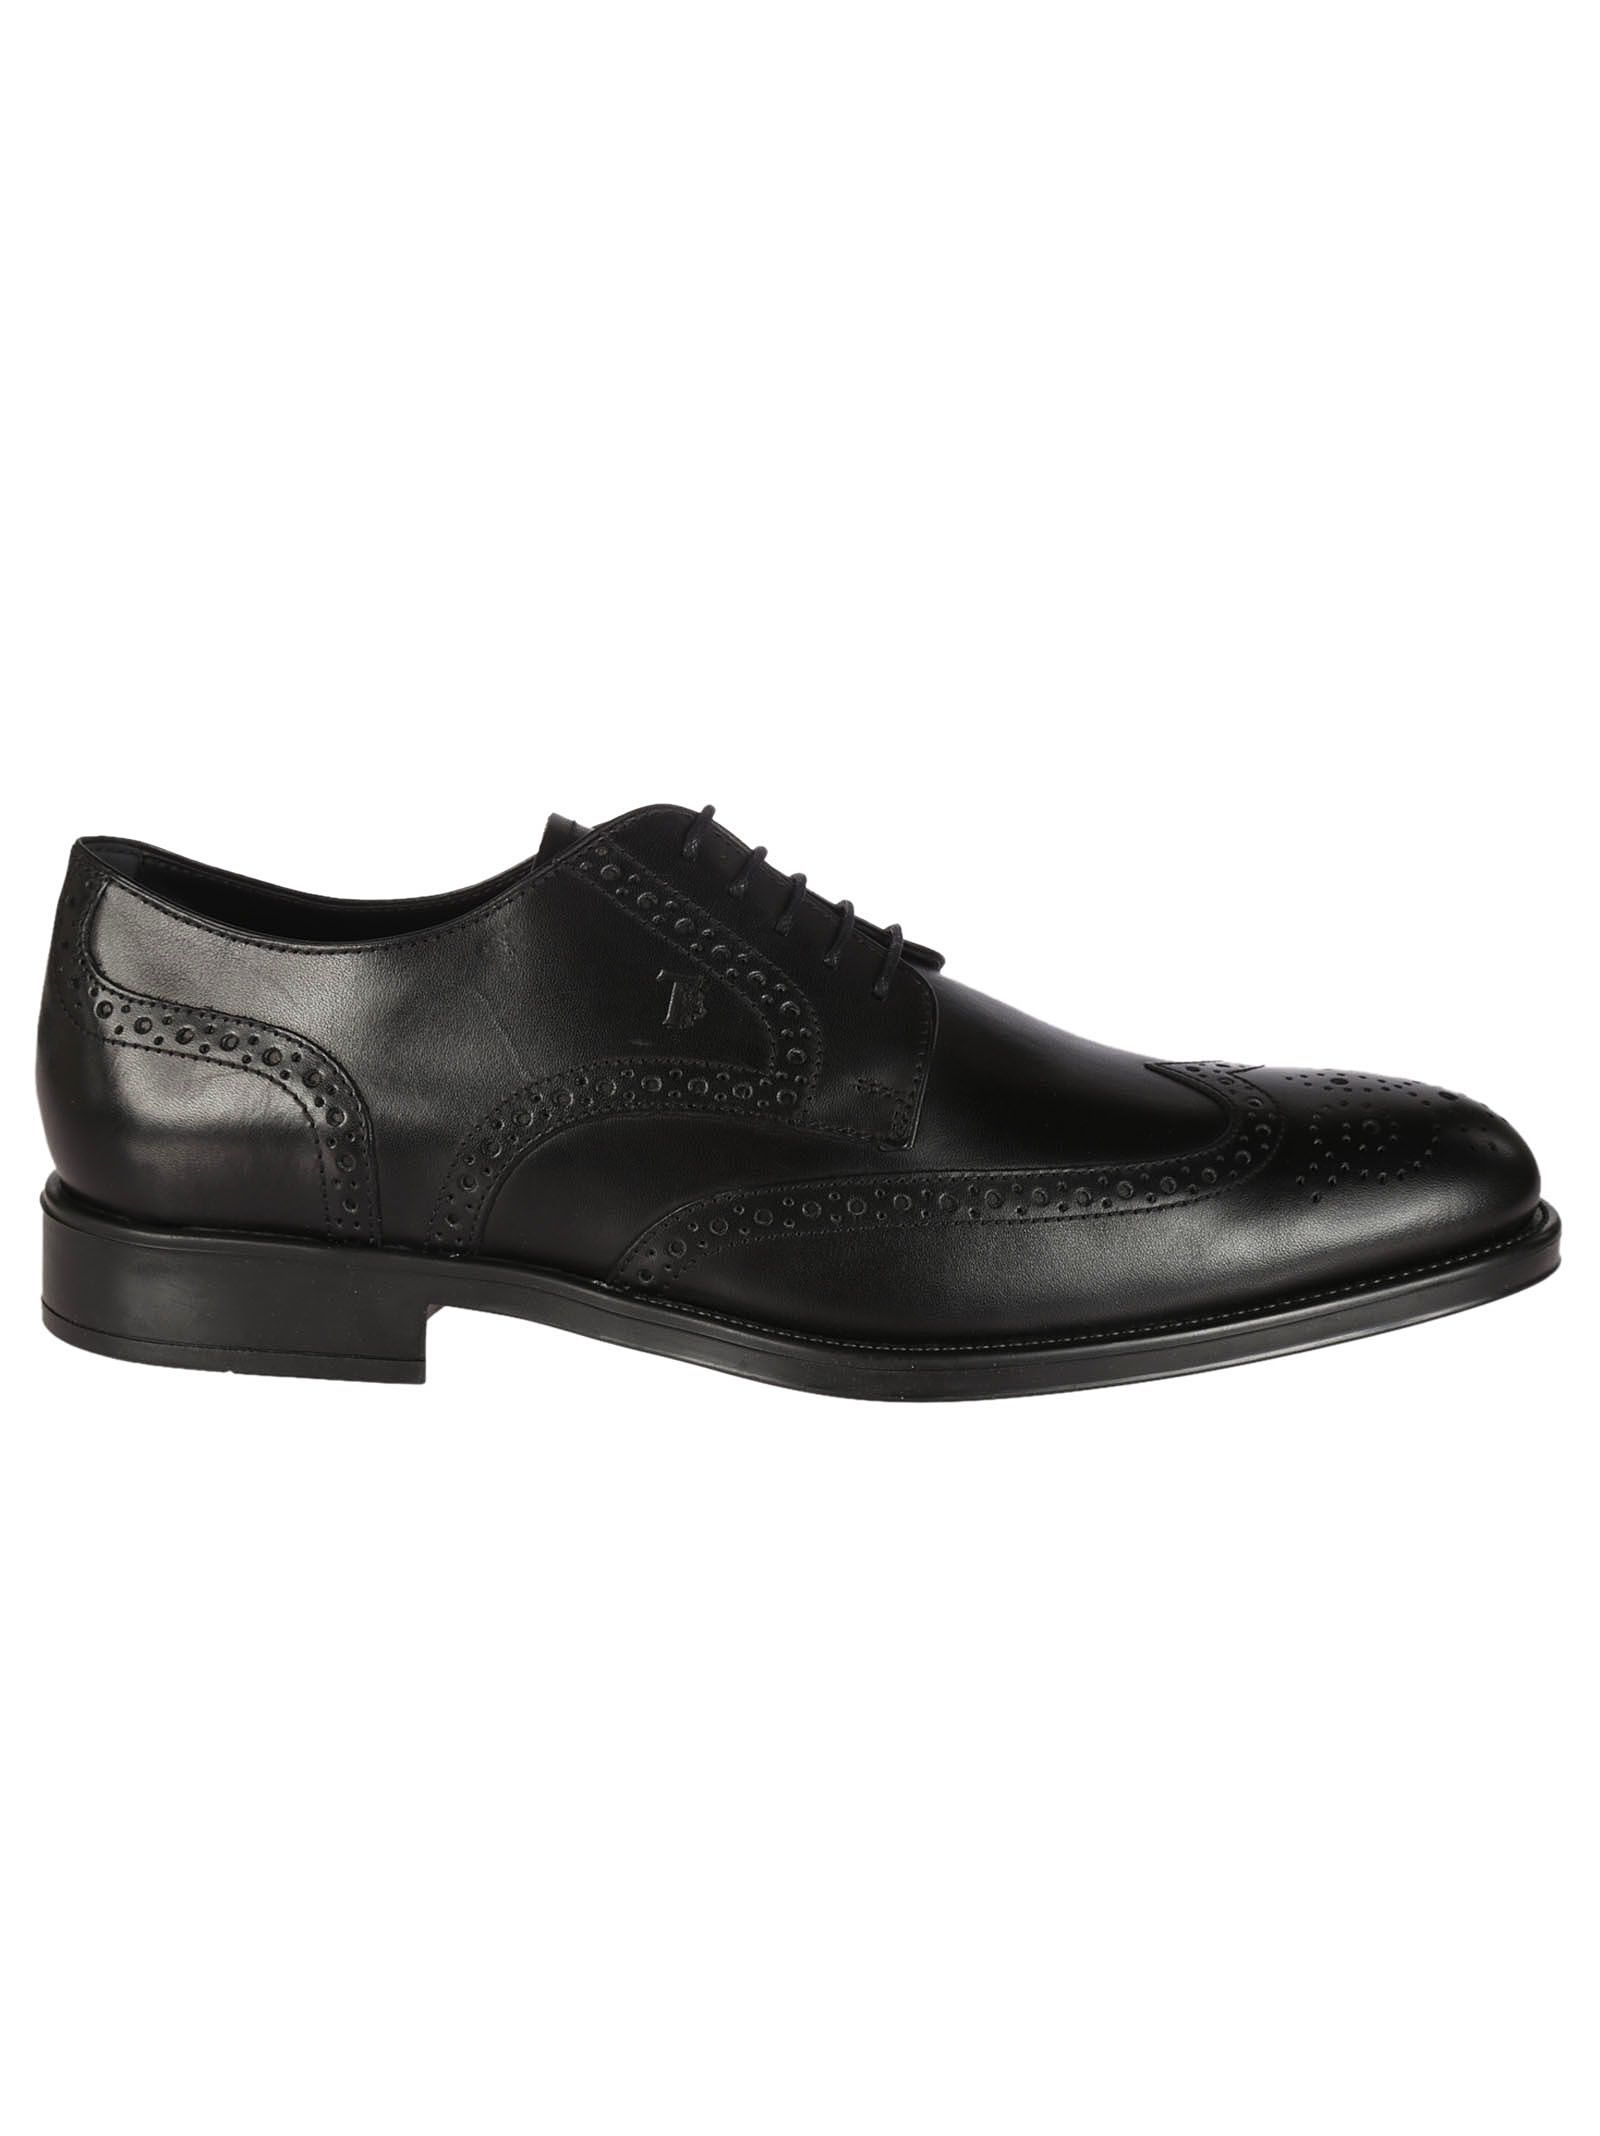 Classic Leather Derby Shoes - 7.5 / black Tod's eW3GUE